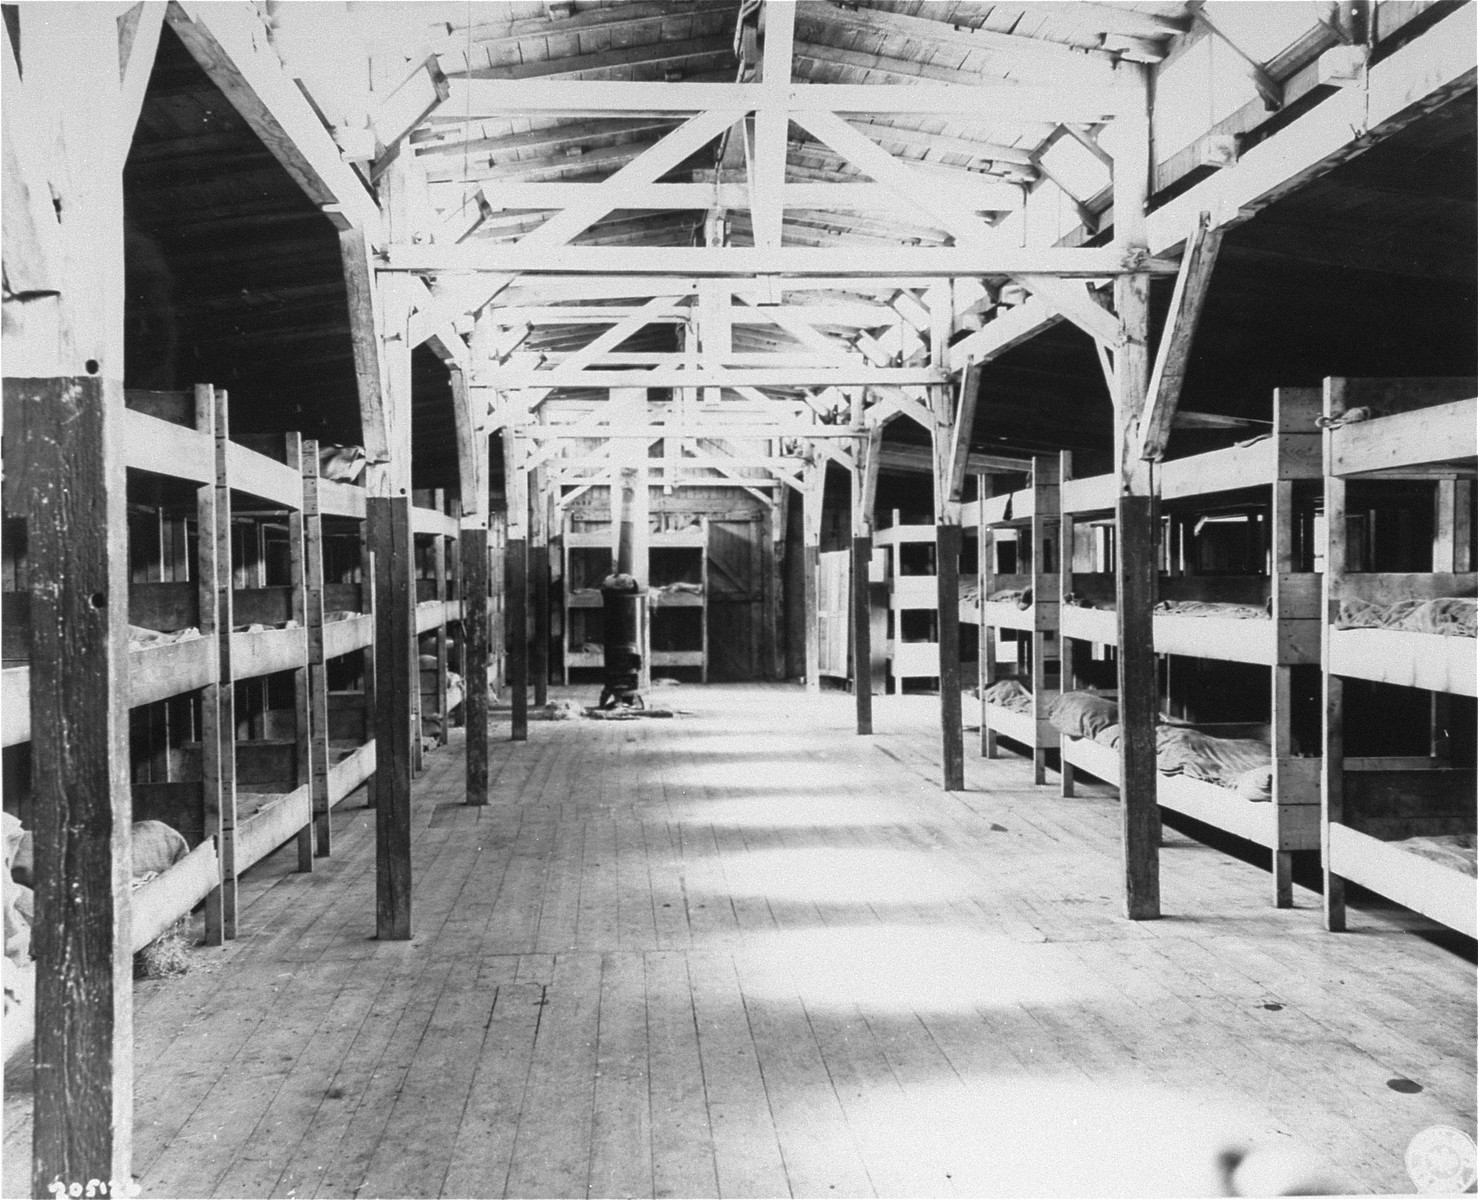 The interior of a barracks in the Flossenbuerg concentration camp that was intended to house 1500 prisoners.